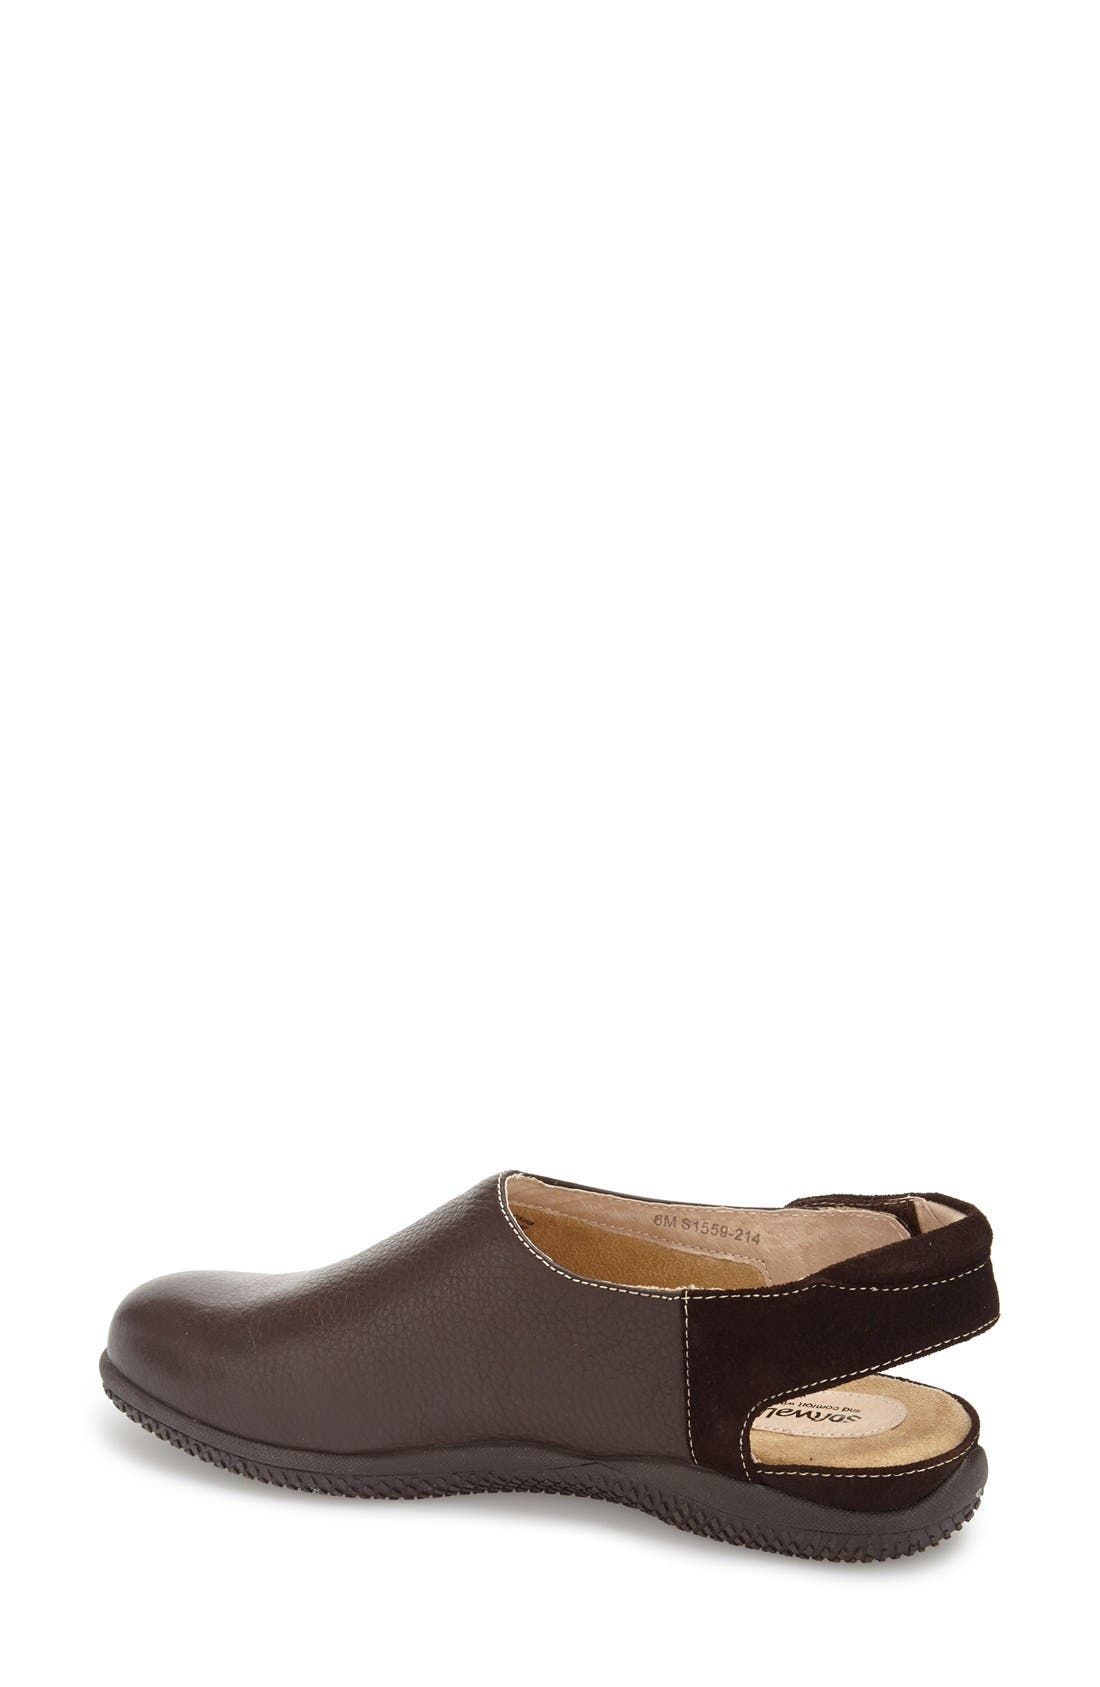 'Holland' Slingback Clog,                             Alternate thumbnail 4, color,                             214